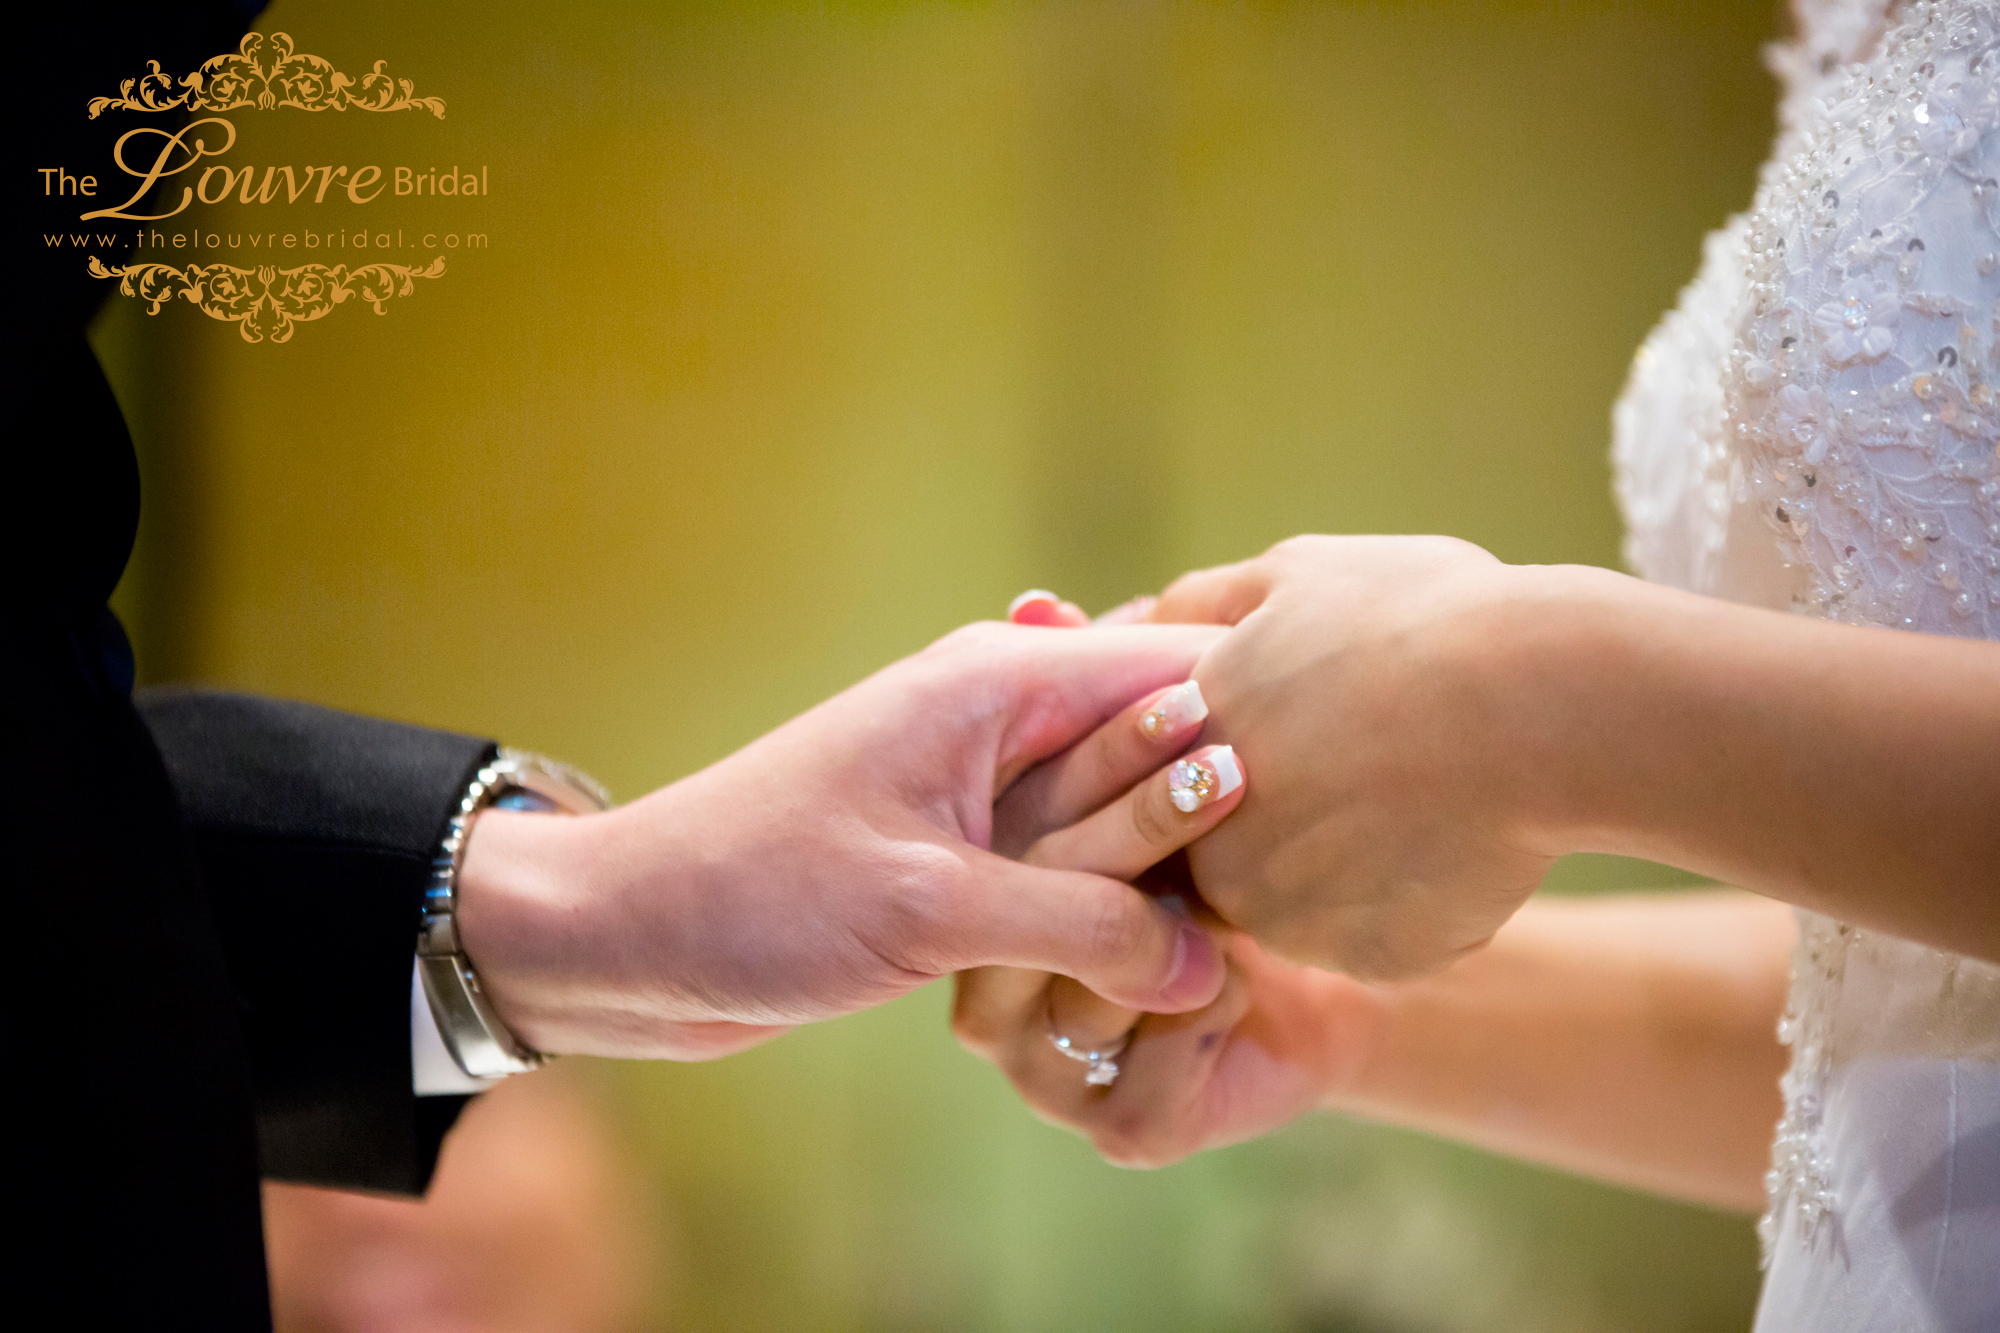 Top 5 Questions You Don't Want To Ask Yourself After Your Wedding